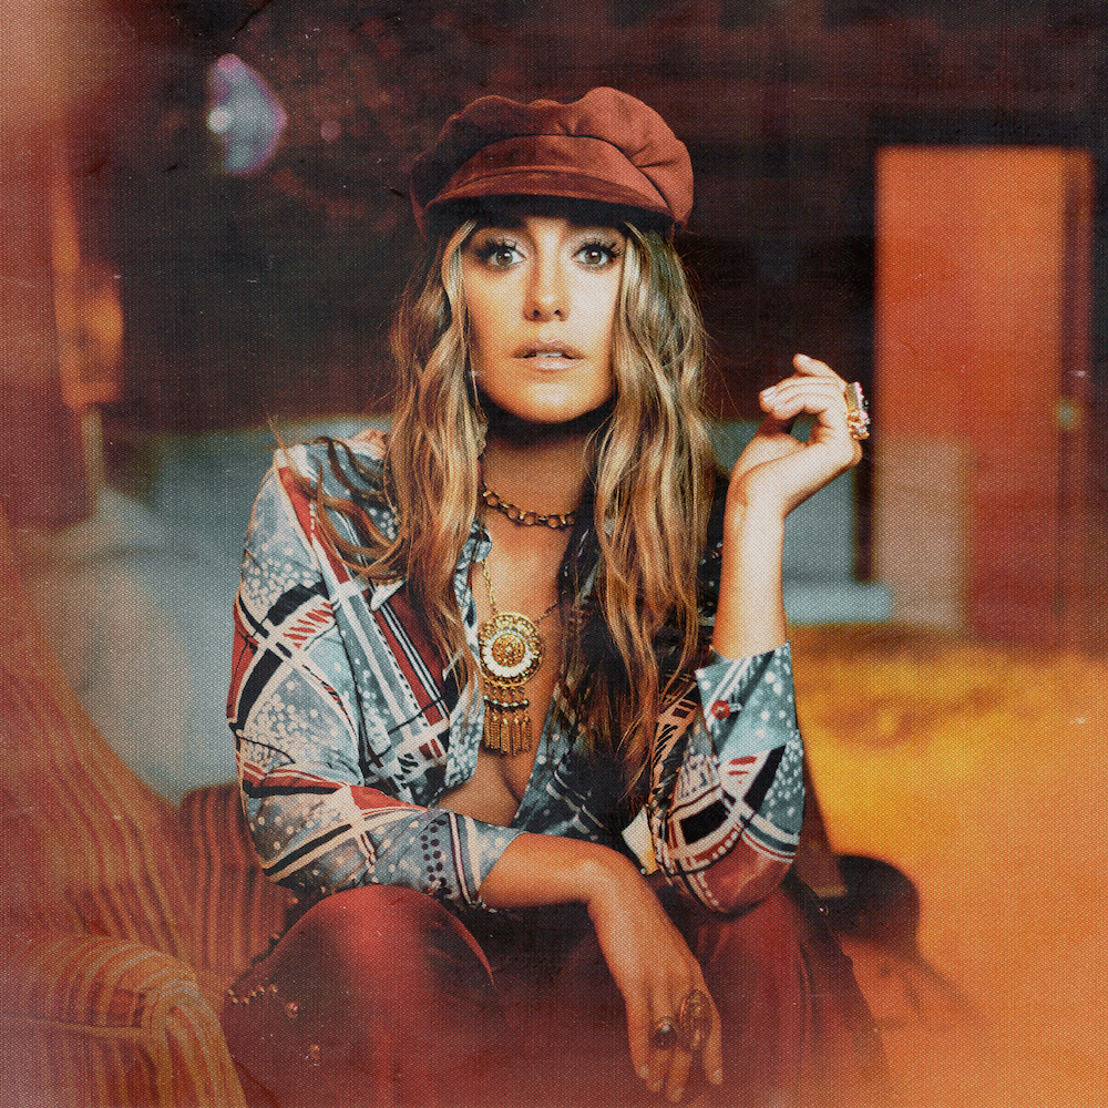 """Country Newcomer Lainey Wilson's Hit Single """"Things A Man Oughta Know'"""" Certified Gold in Canada"""